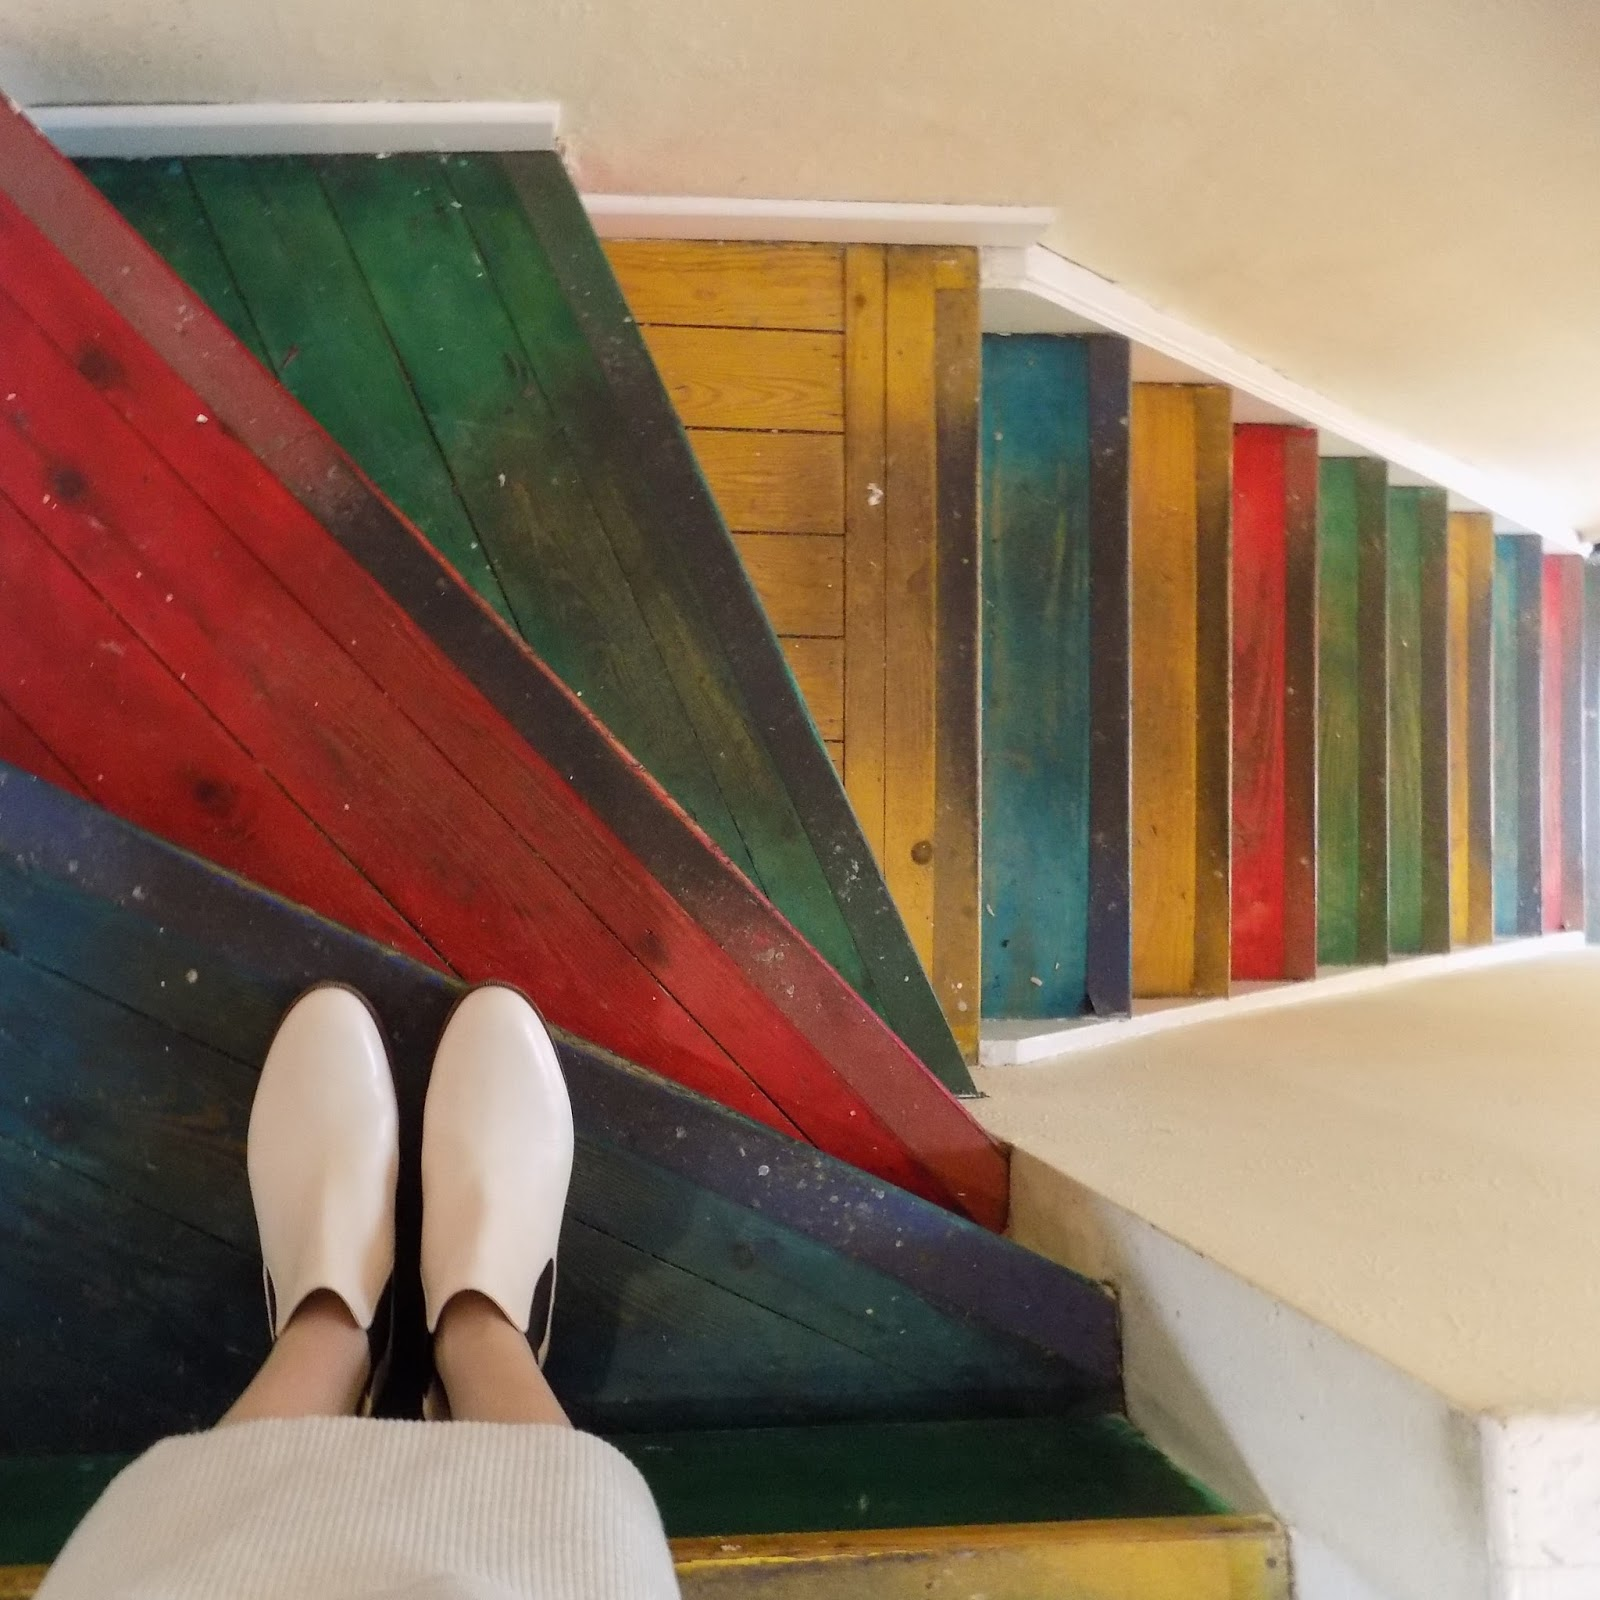 Clarks pale pink Chelsea boots and bright staircase